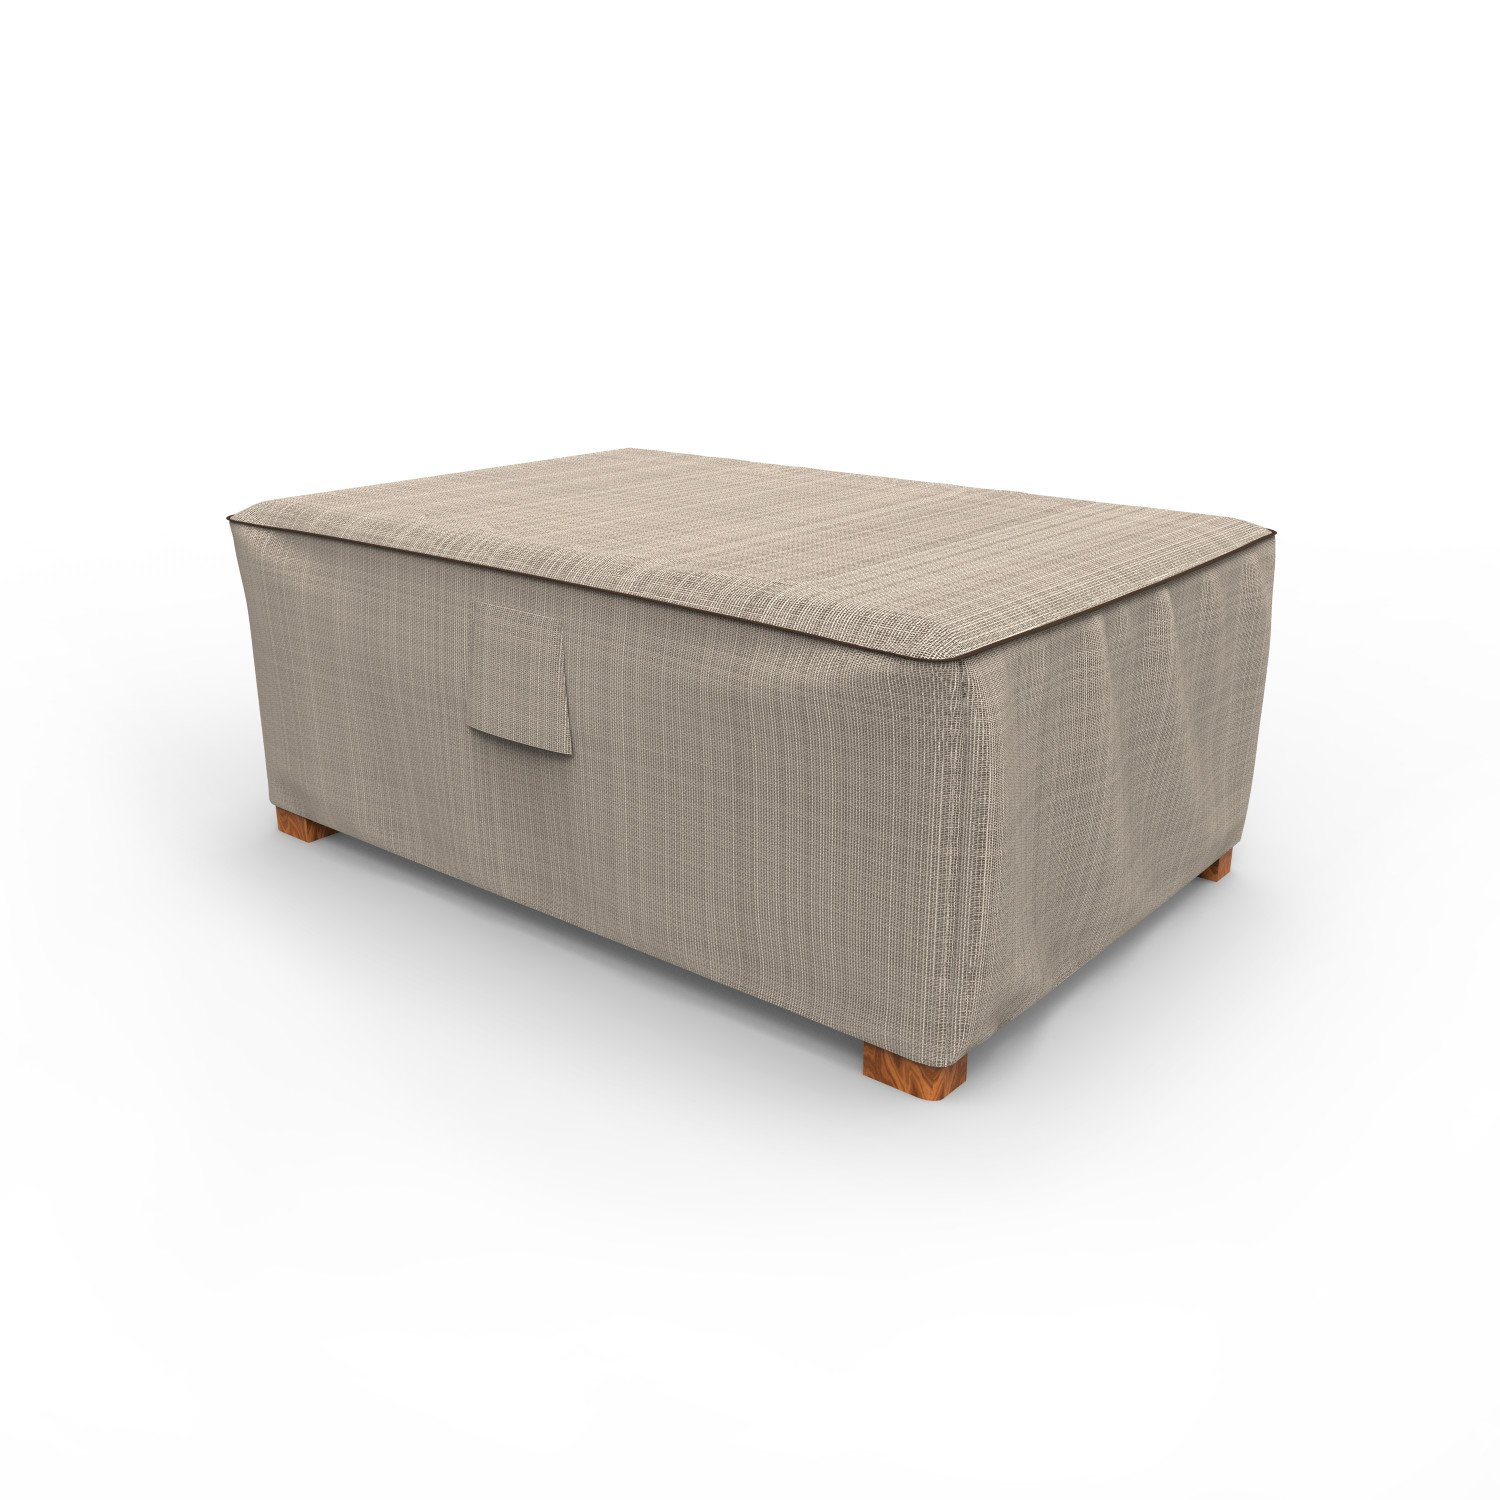 Budge English Garden Outdoor Ottoman Cover 18'' H x 33'' W x 25'' L, Tan Tweed